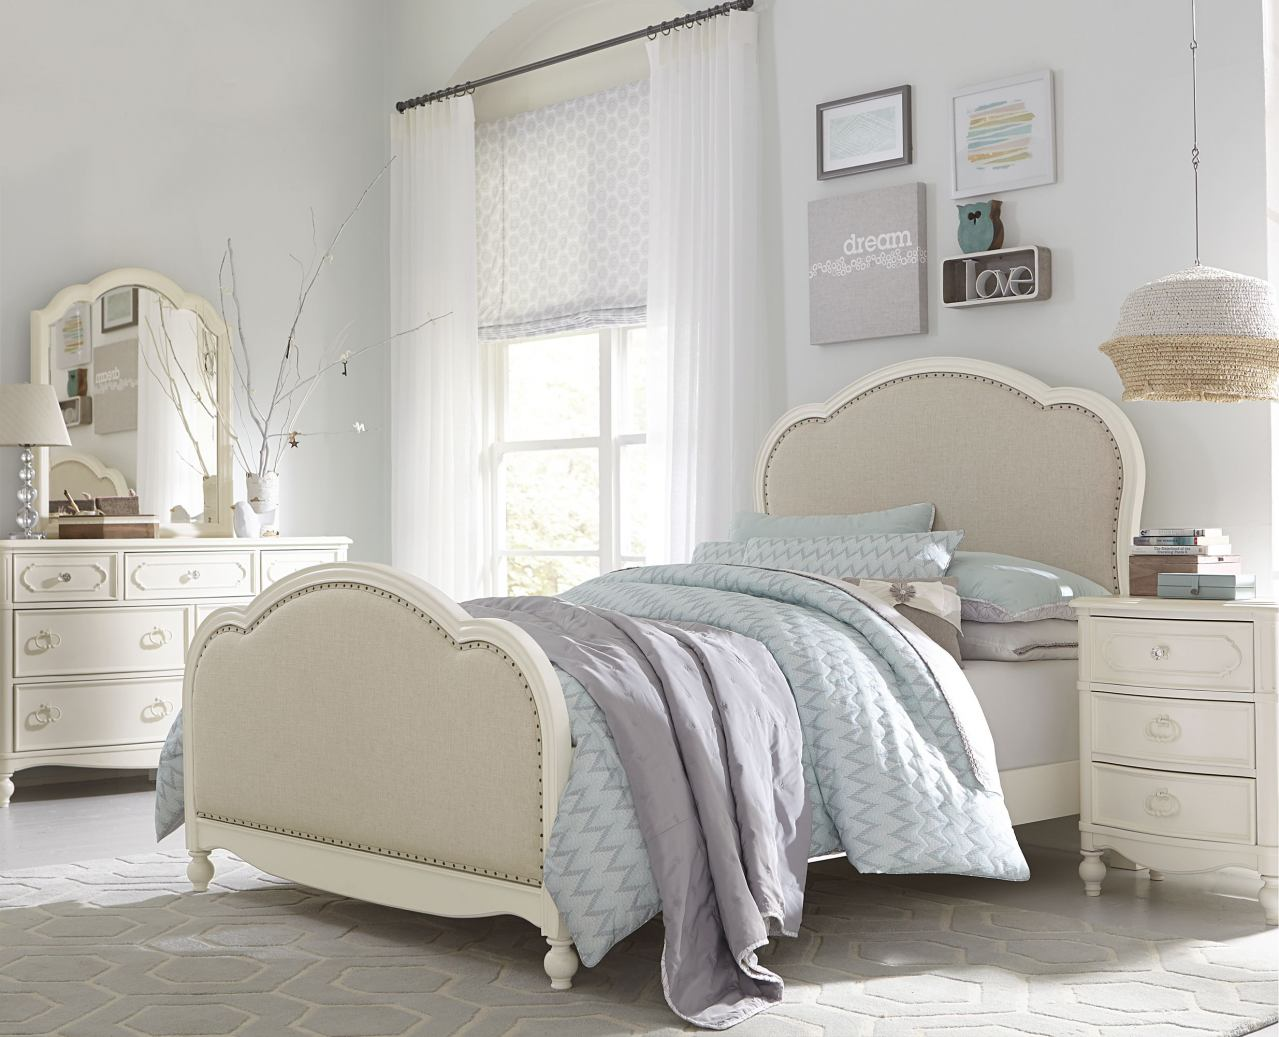 Legacy Classic Kids Harmony 4 Piece Victoria Upholstered Panel Bedroom Set in Antique Linen White